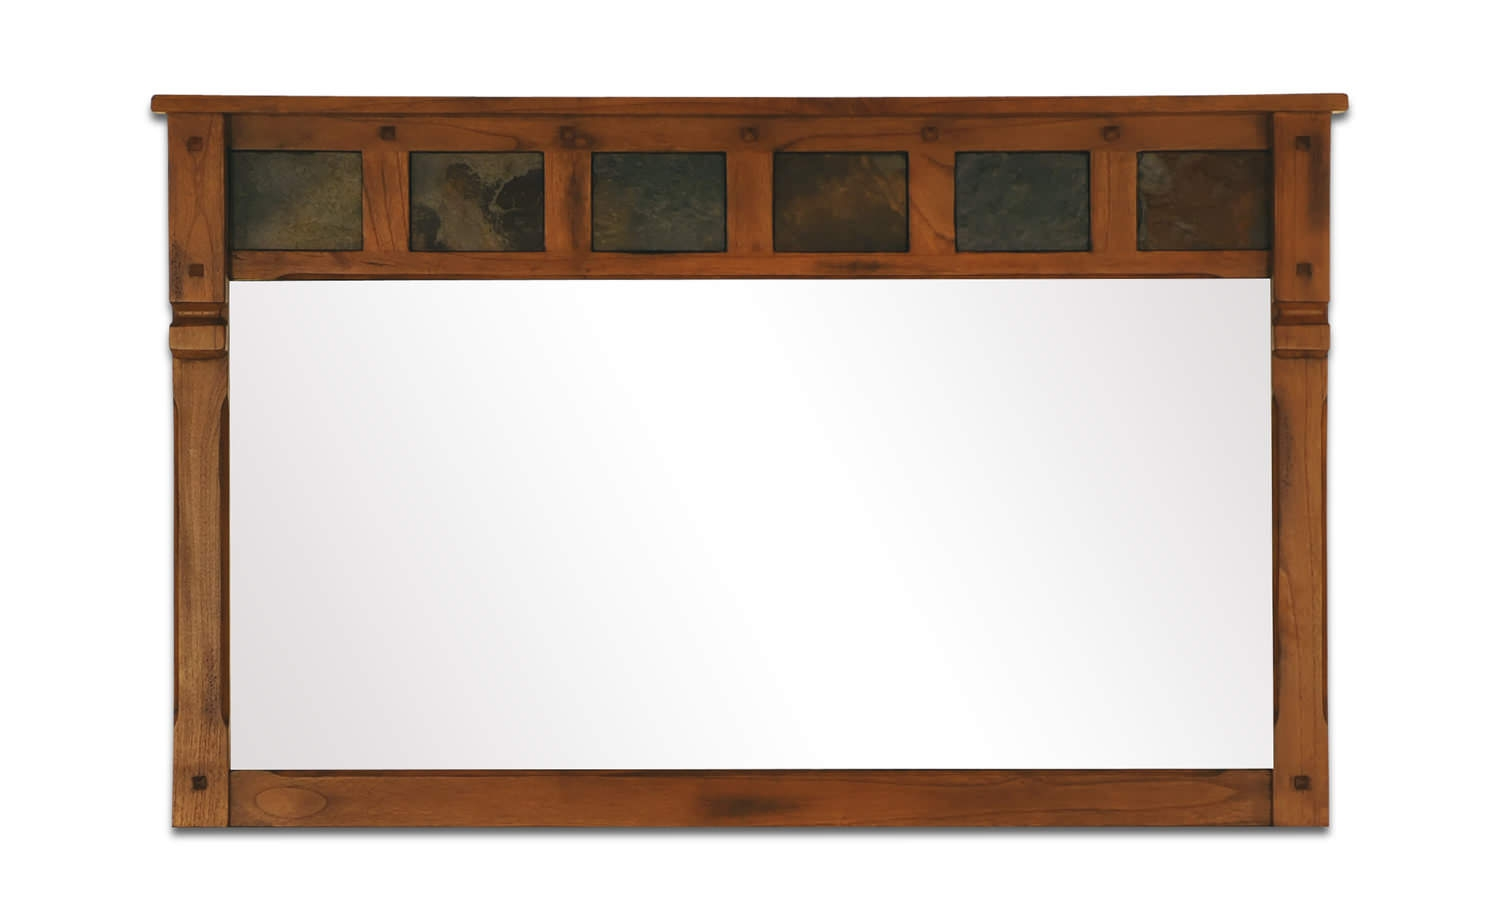 Sedona Rustic Oak Mirror Hom Furniture Furniture Stores In Inside Rustic Oak Mirror (Image 15 of 15)